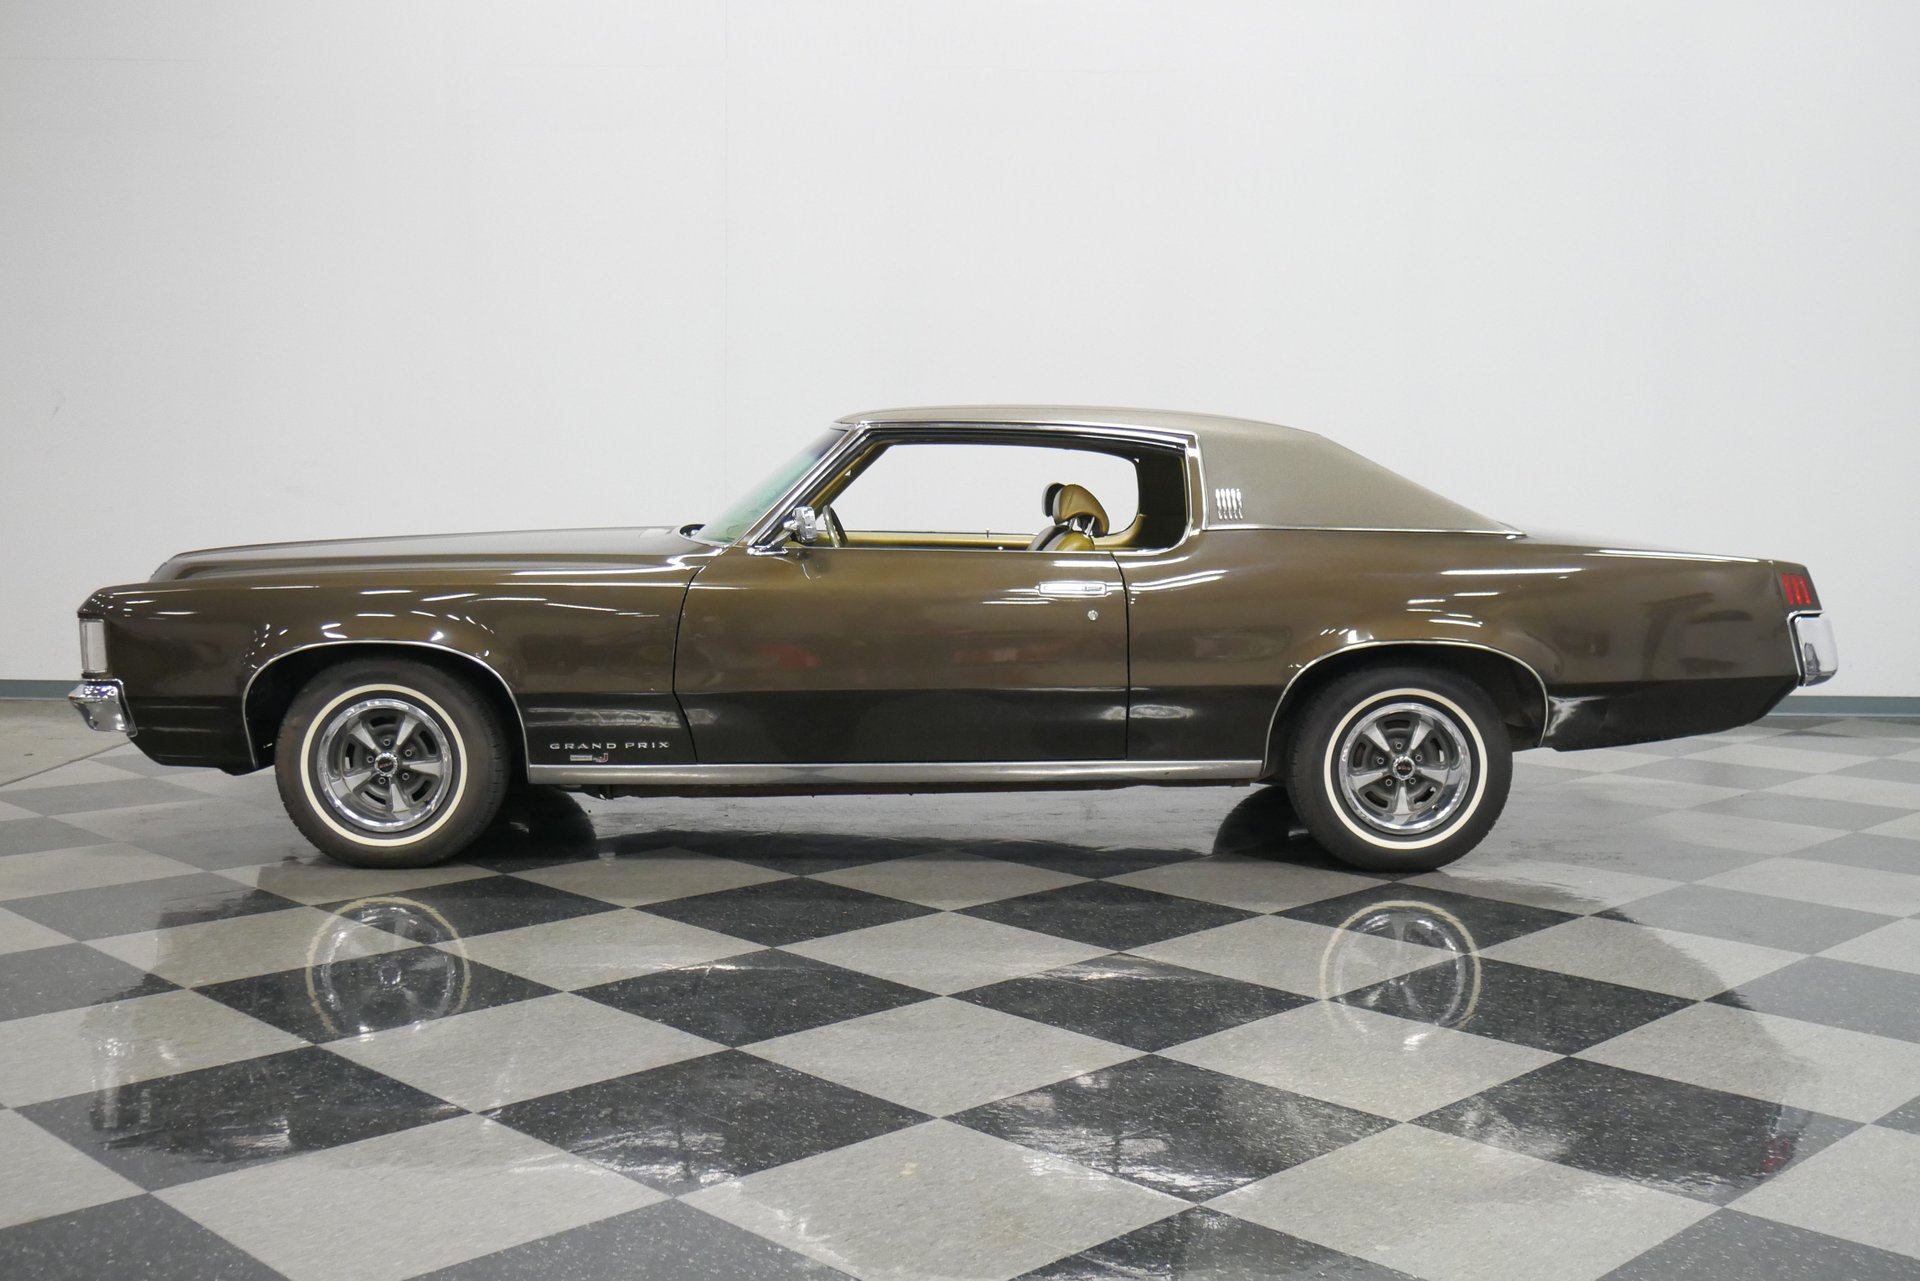 1969 pontiac grand prix model j